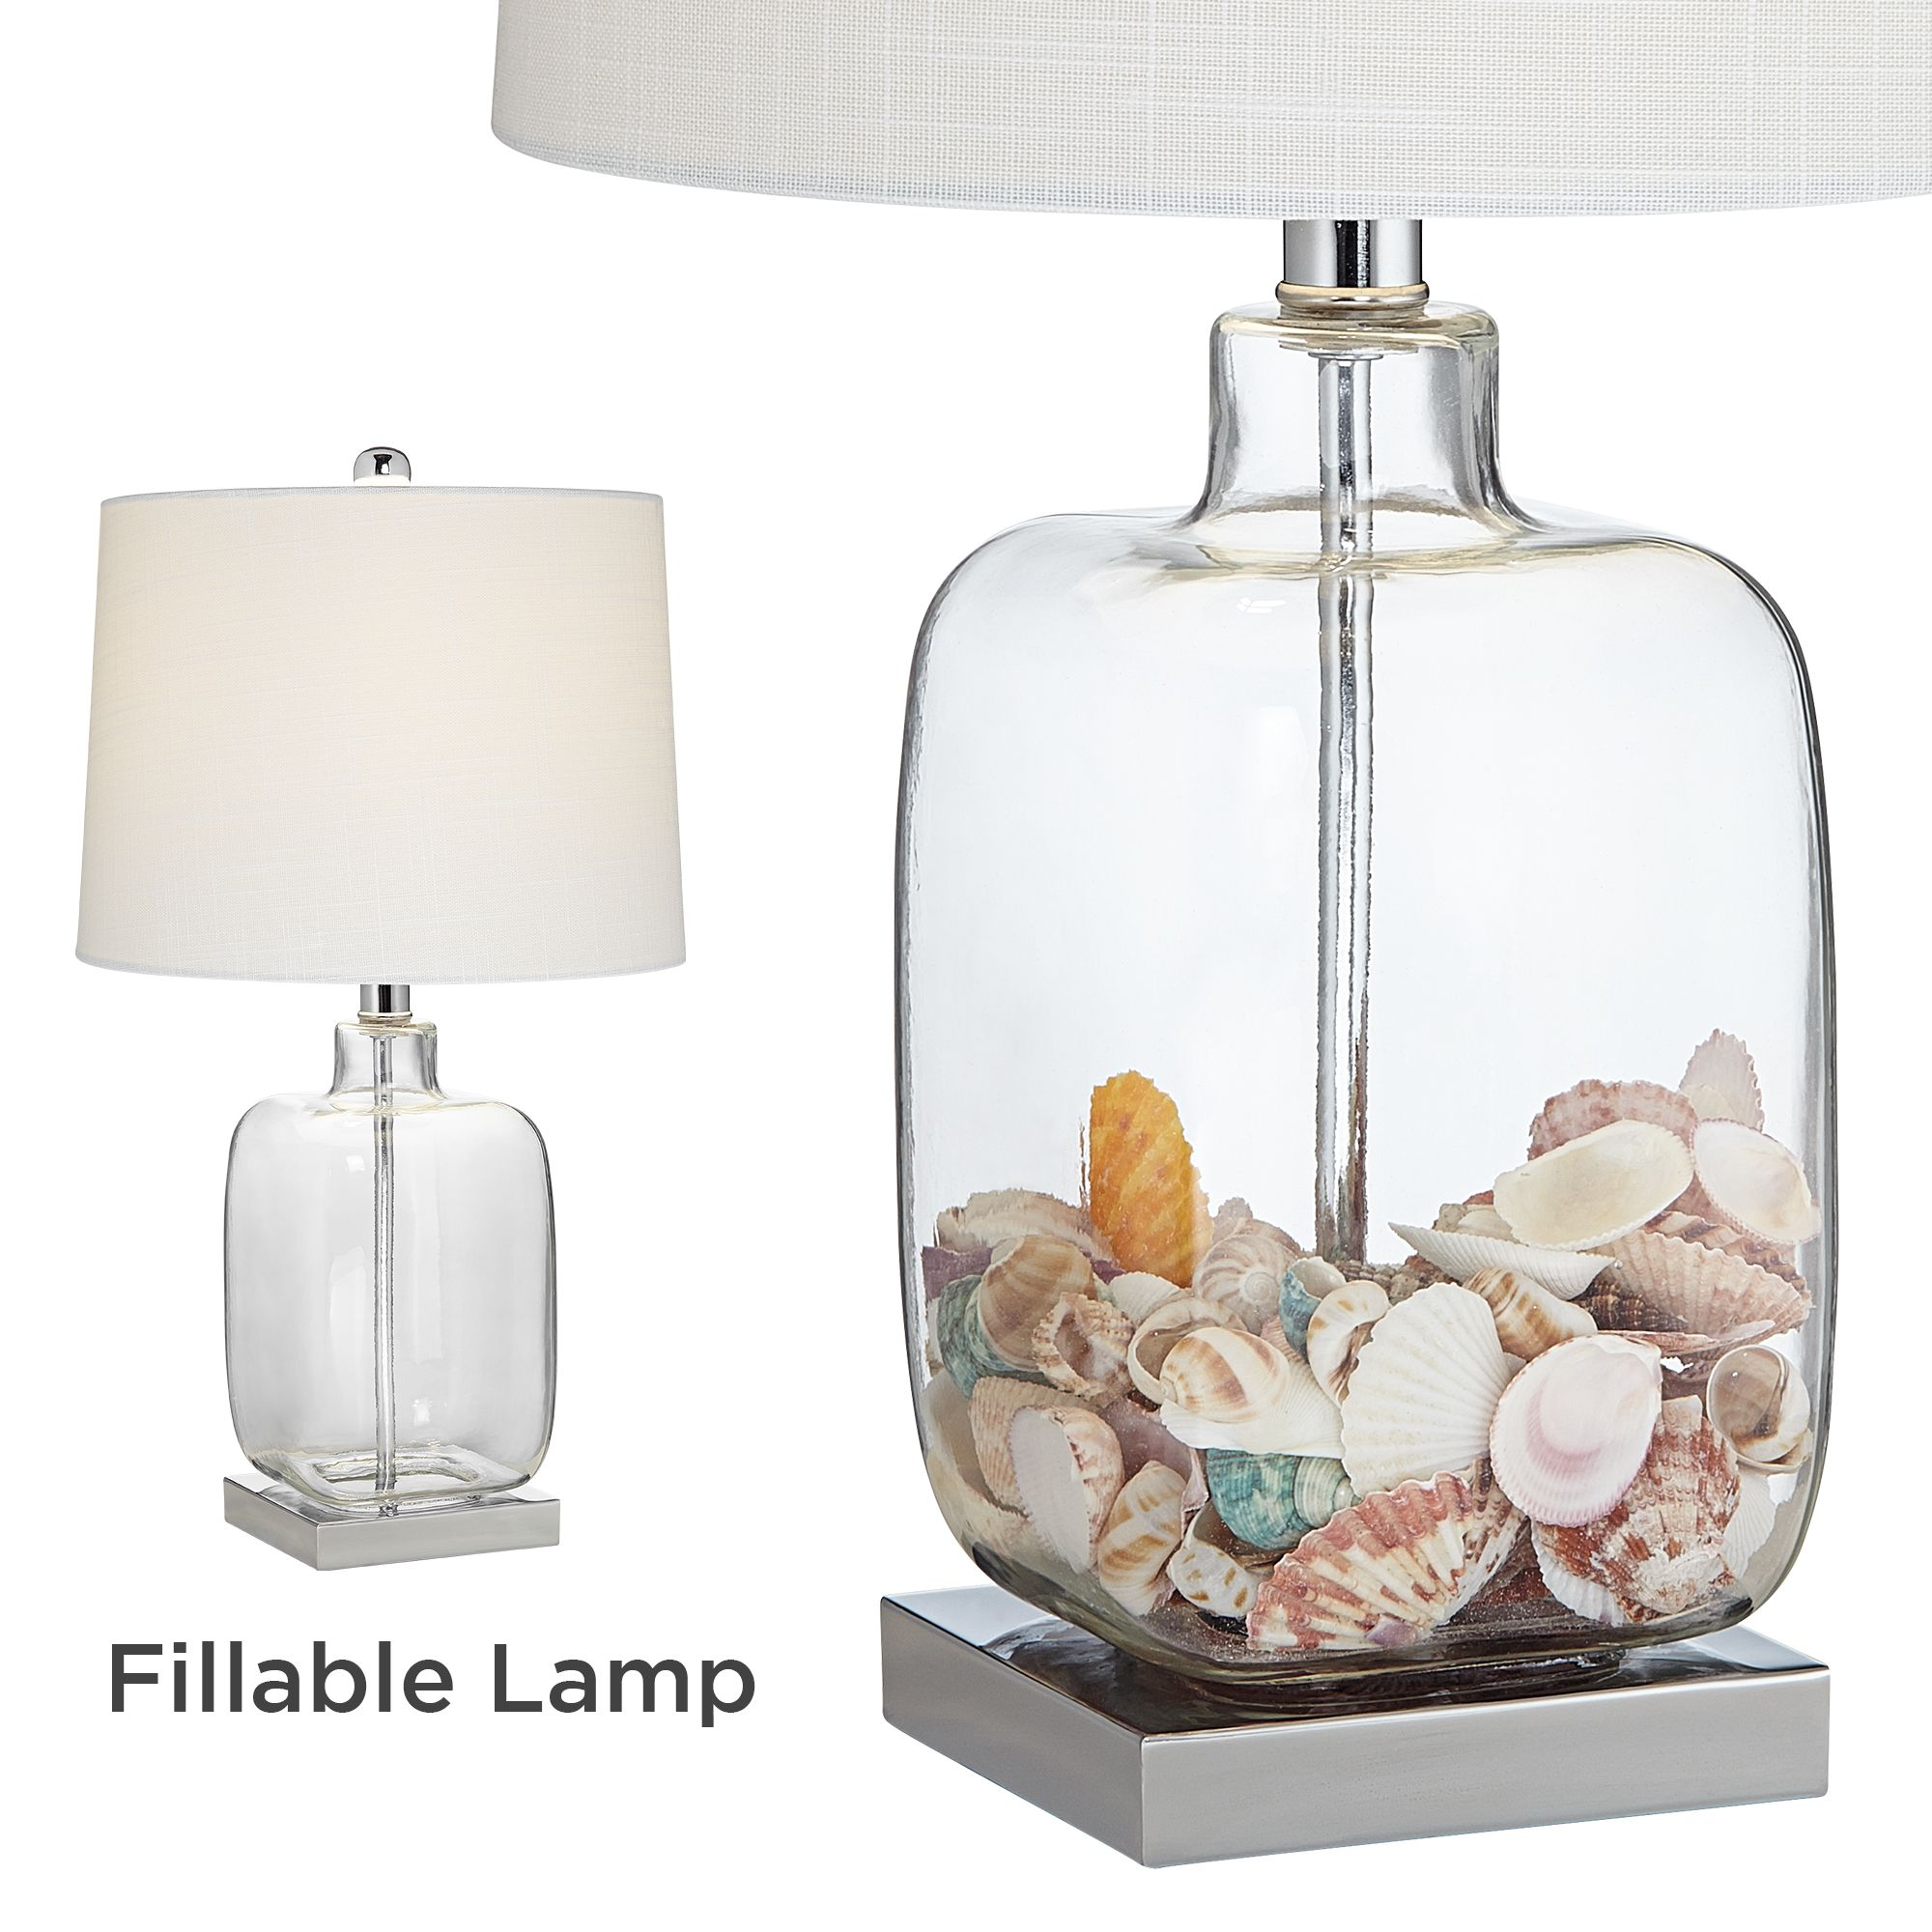 360 lighting coastal accent table lamps set of 2 clear glass fillable sea shells white drum shade for living room family bedroom